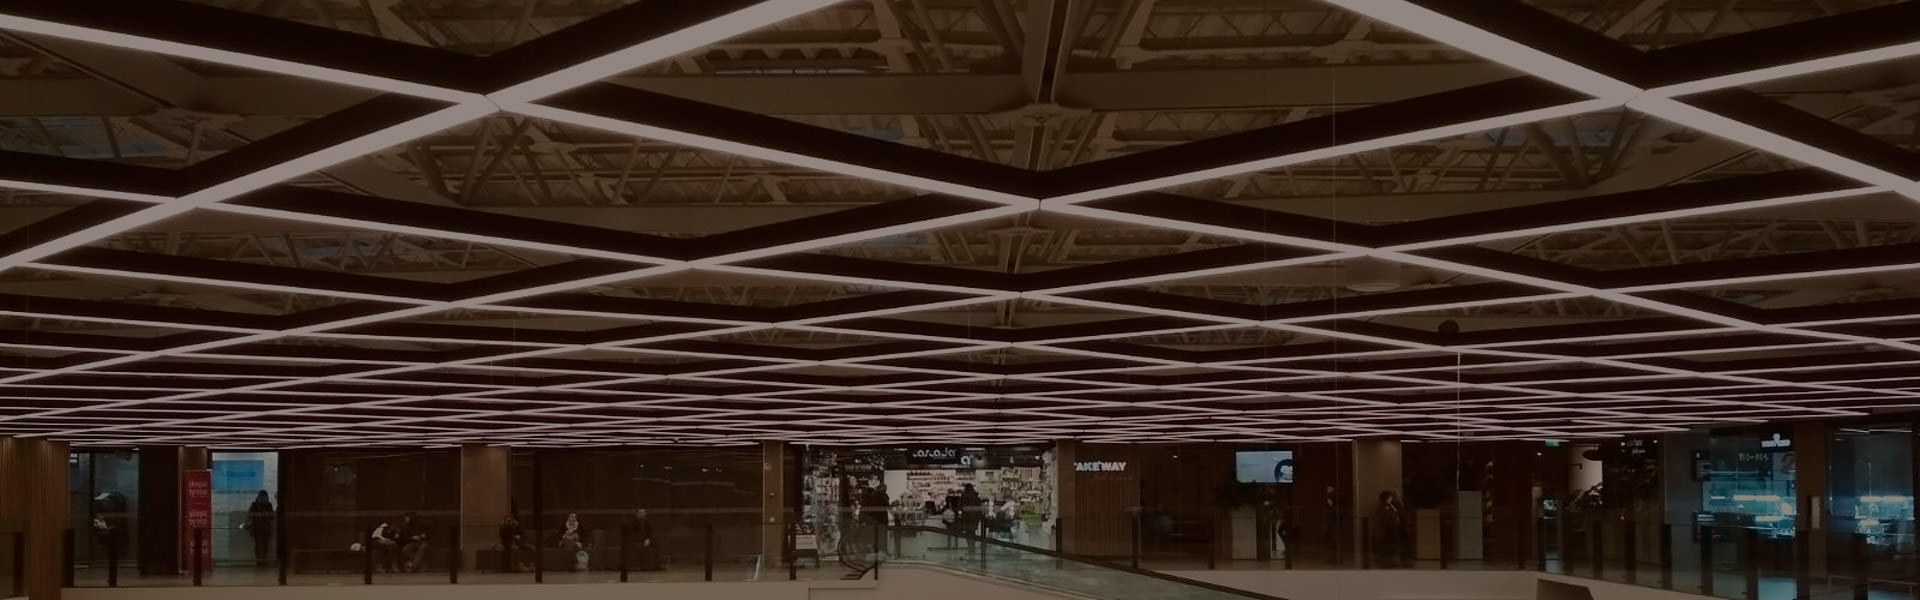 What Should LED Luminaires for Malls and Shops be Like?